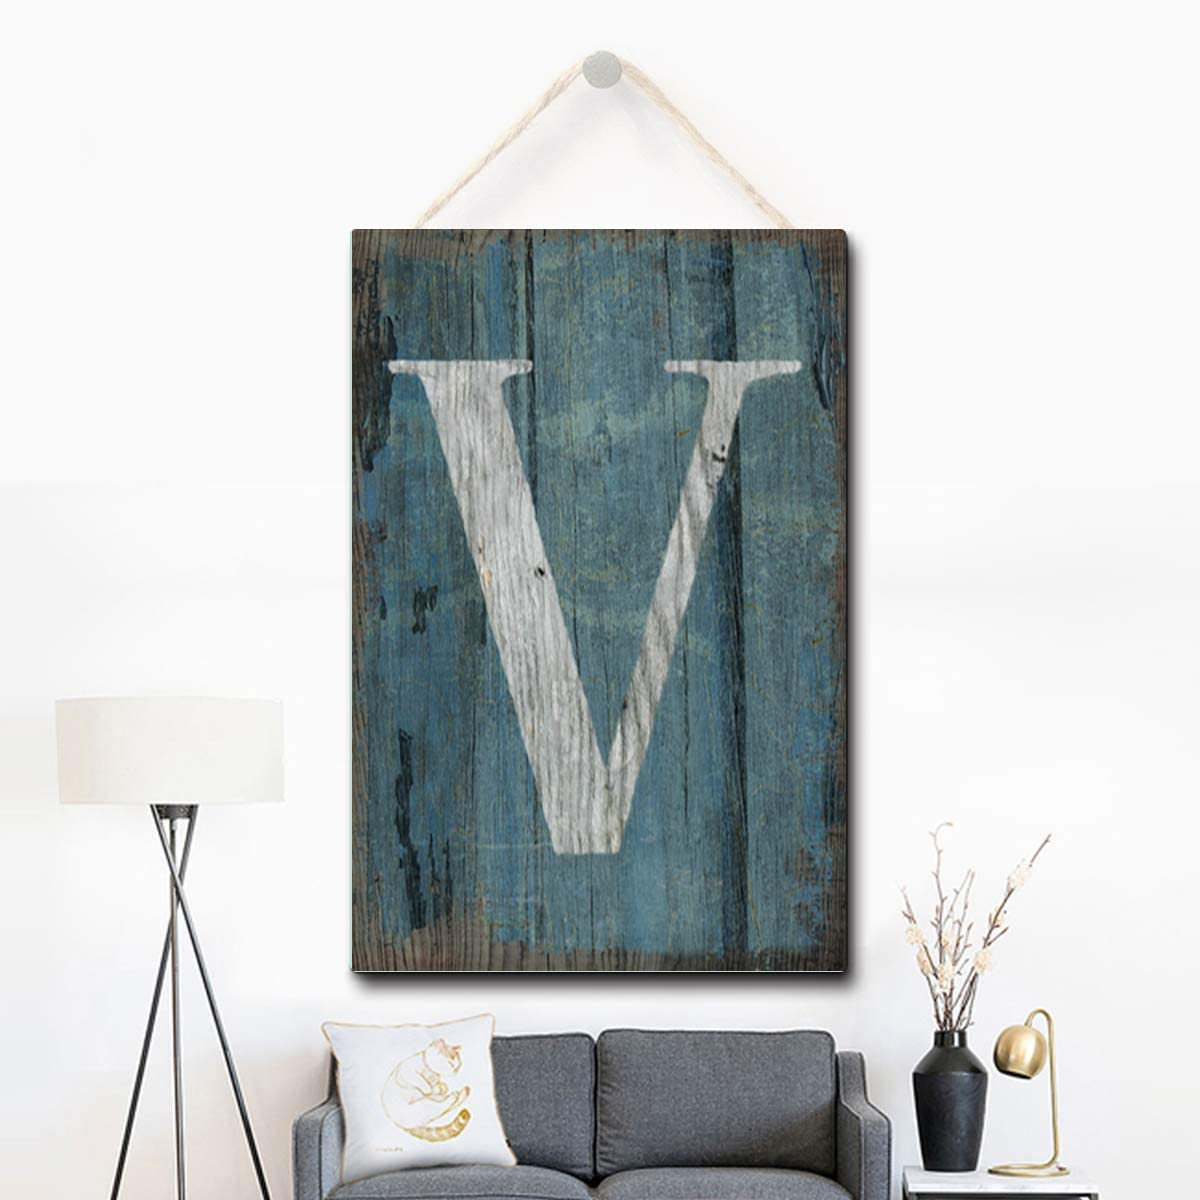 Puernash Wooden Hanging Sign Letter V Wood Sign 8 X 12 Inches